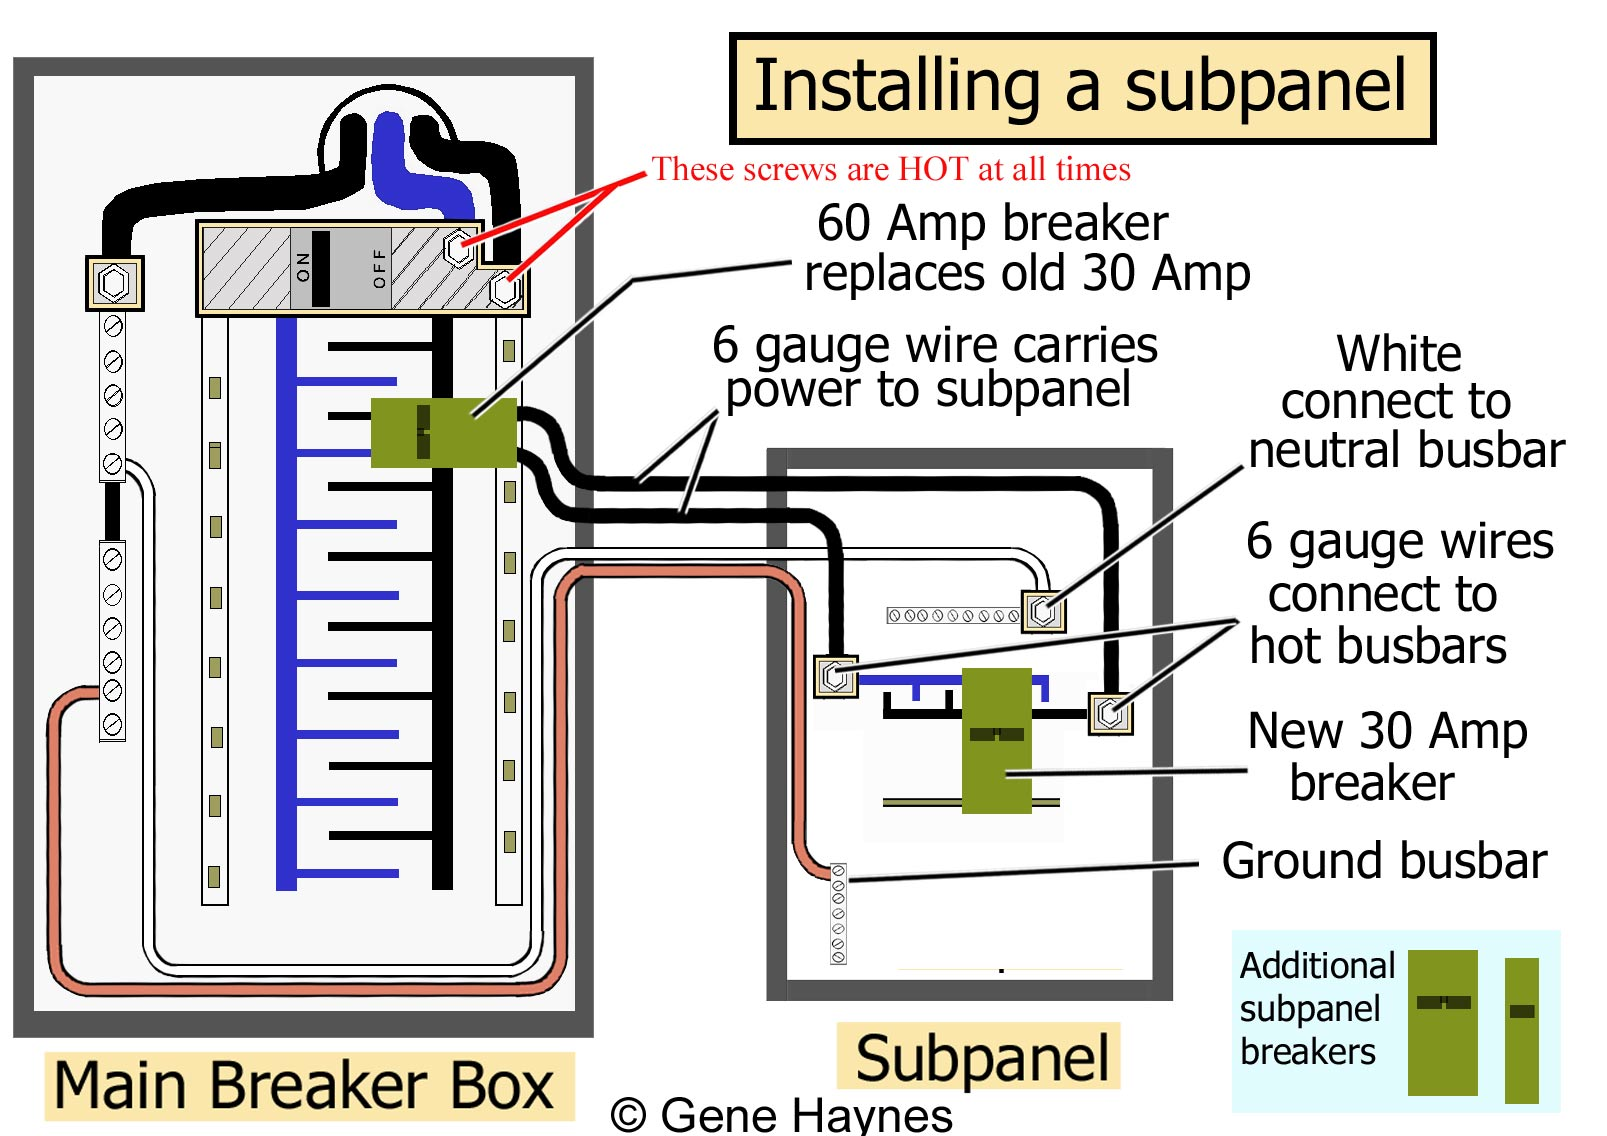 How To Install A Subpanel Main Lug Fuse Box Grounding 1 60 150 Amp Breaker Replaces Any 240 In Near Top Of